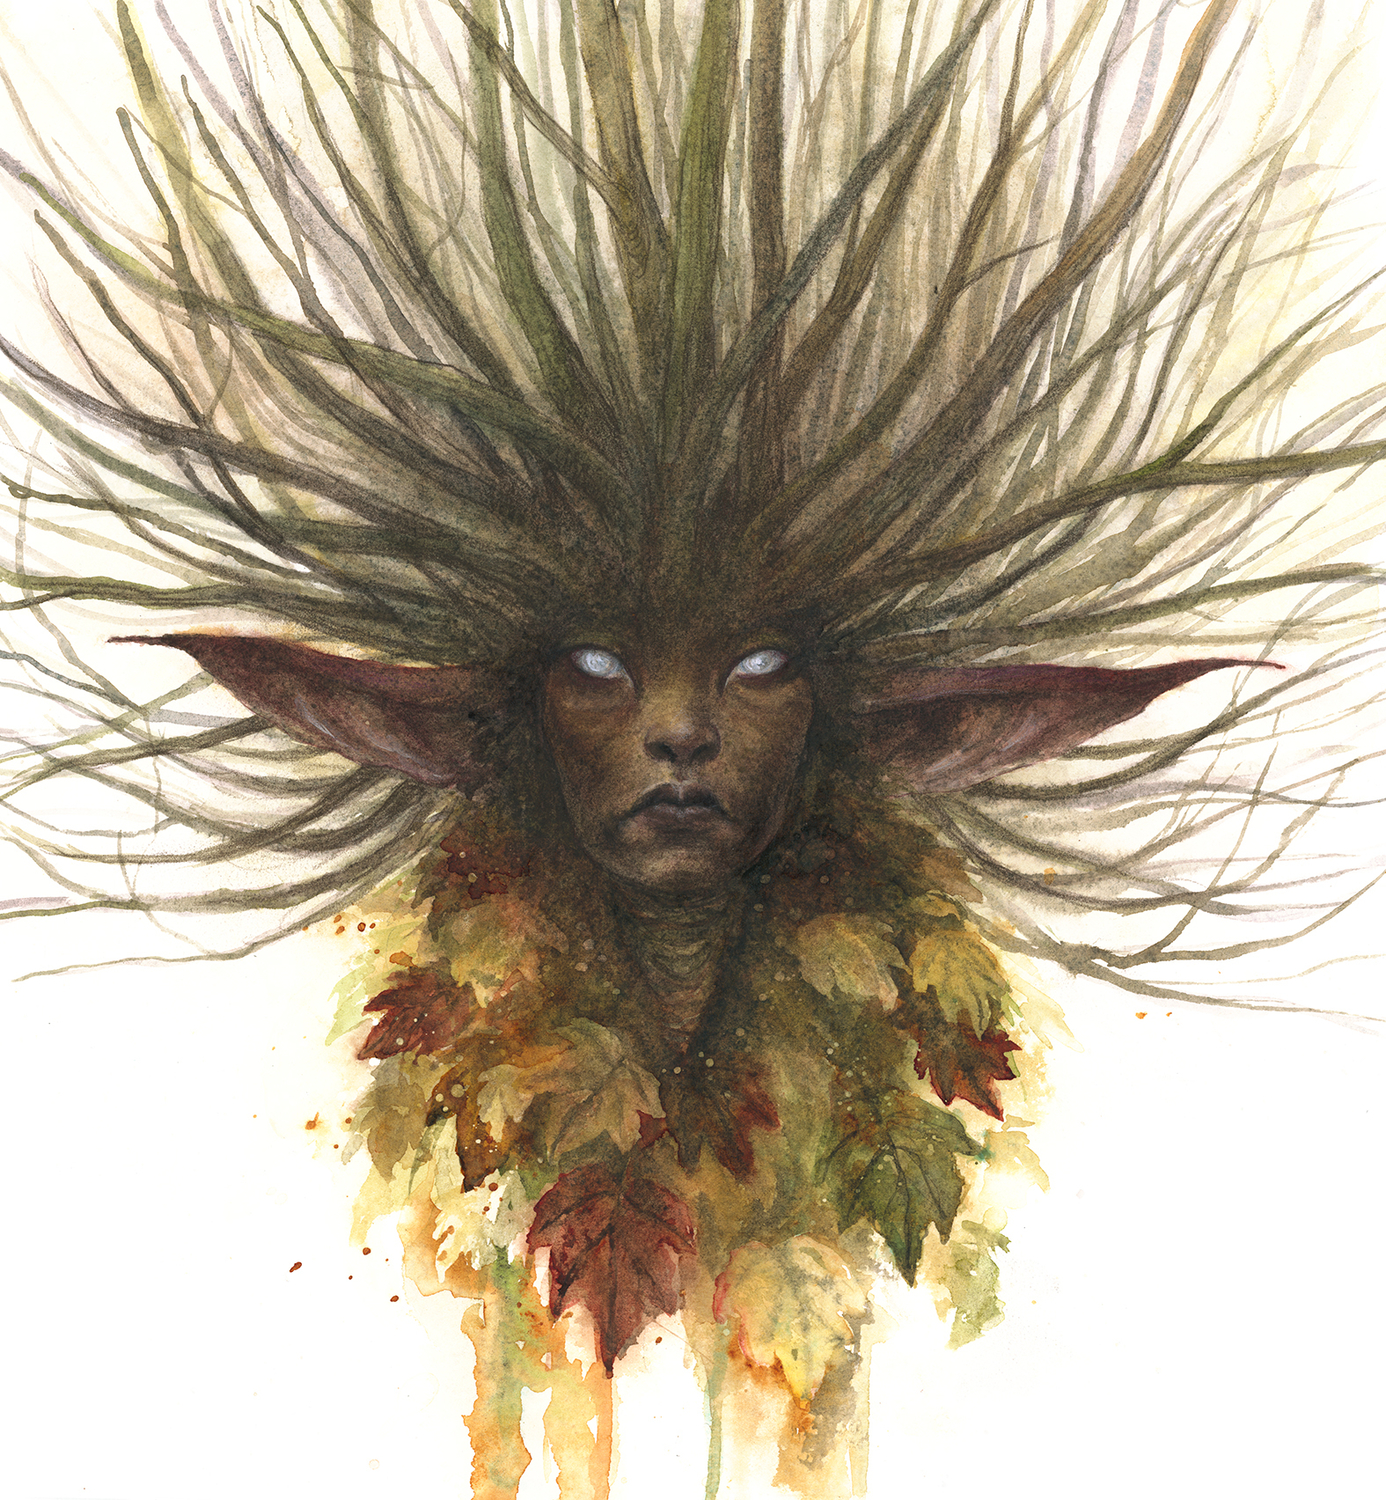 Fae of the Leaves Fallen Artwork by iris compiet